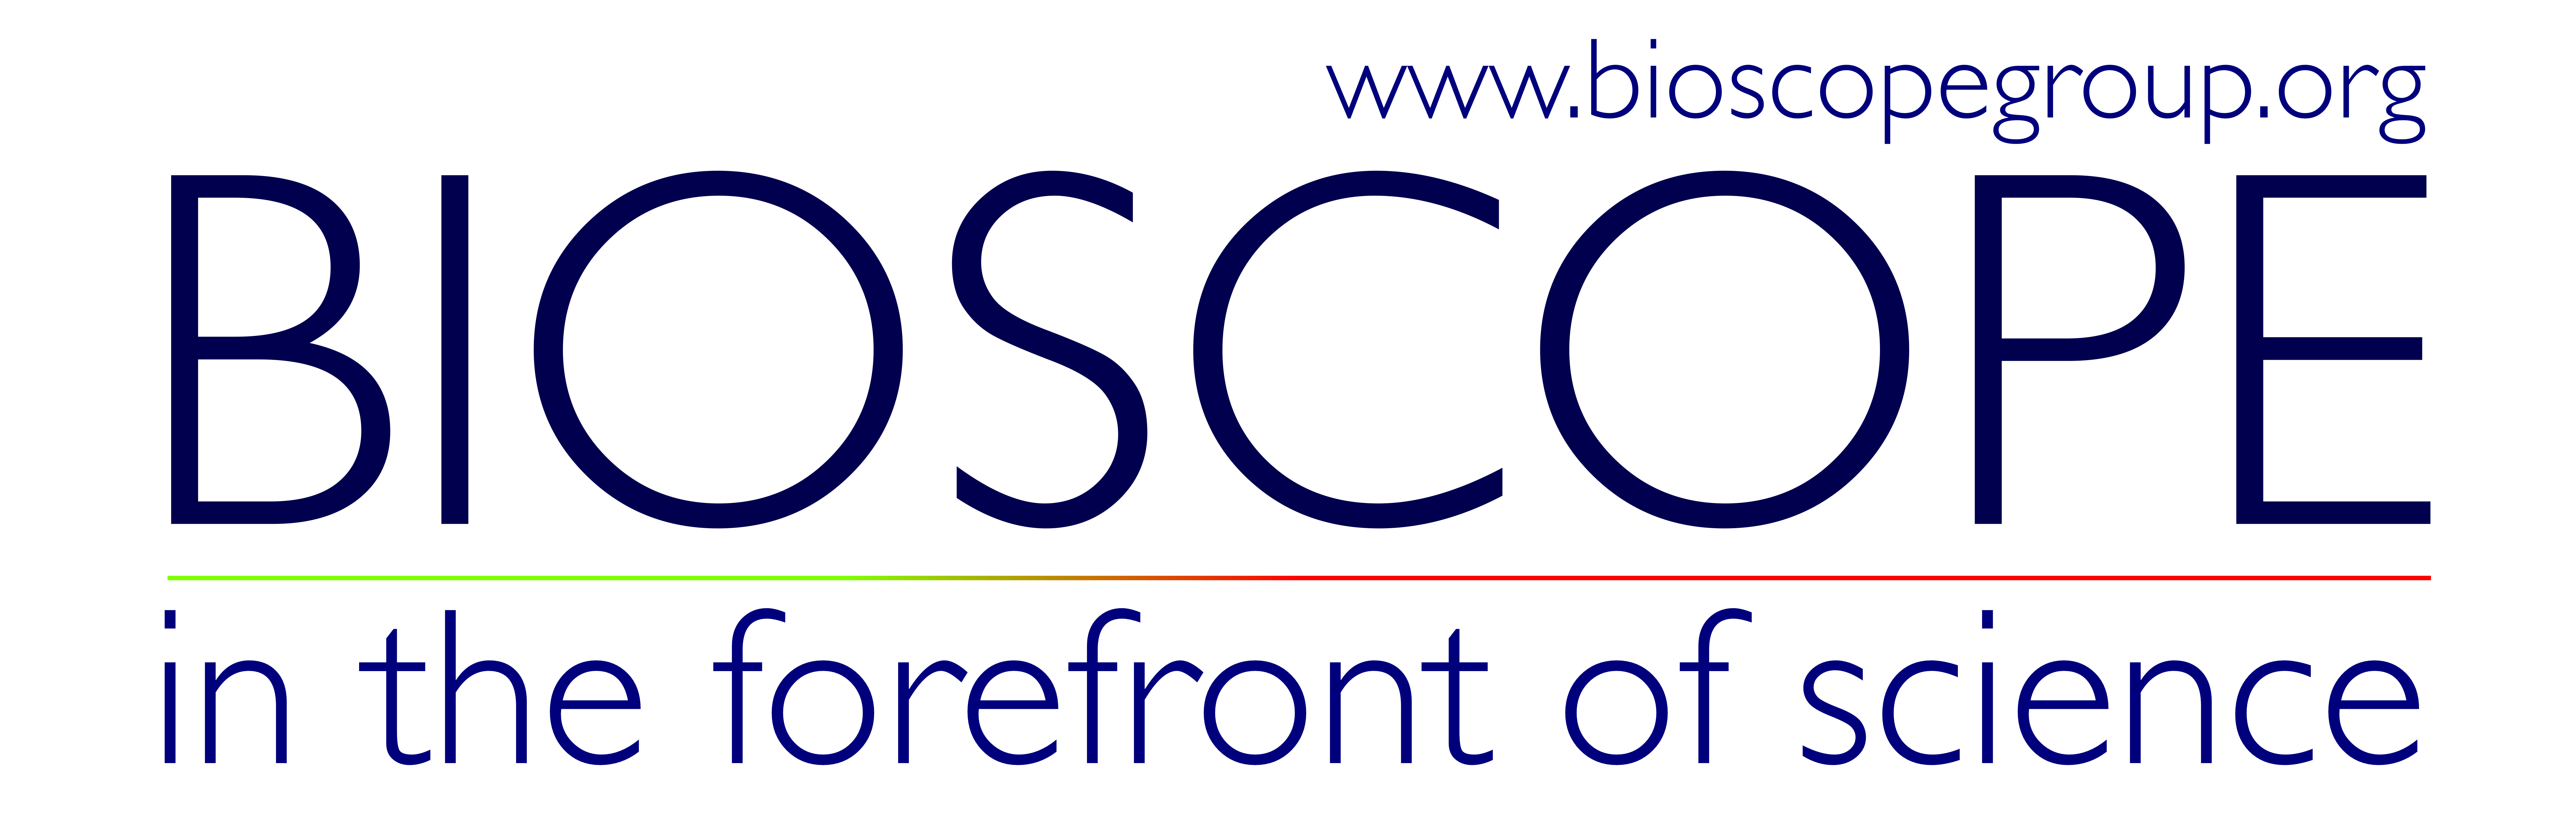 bioscope